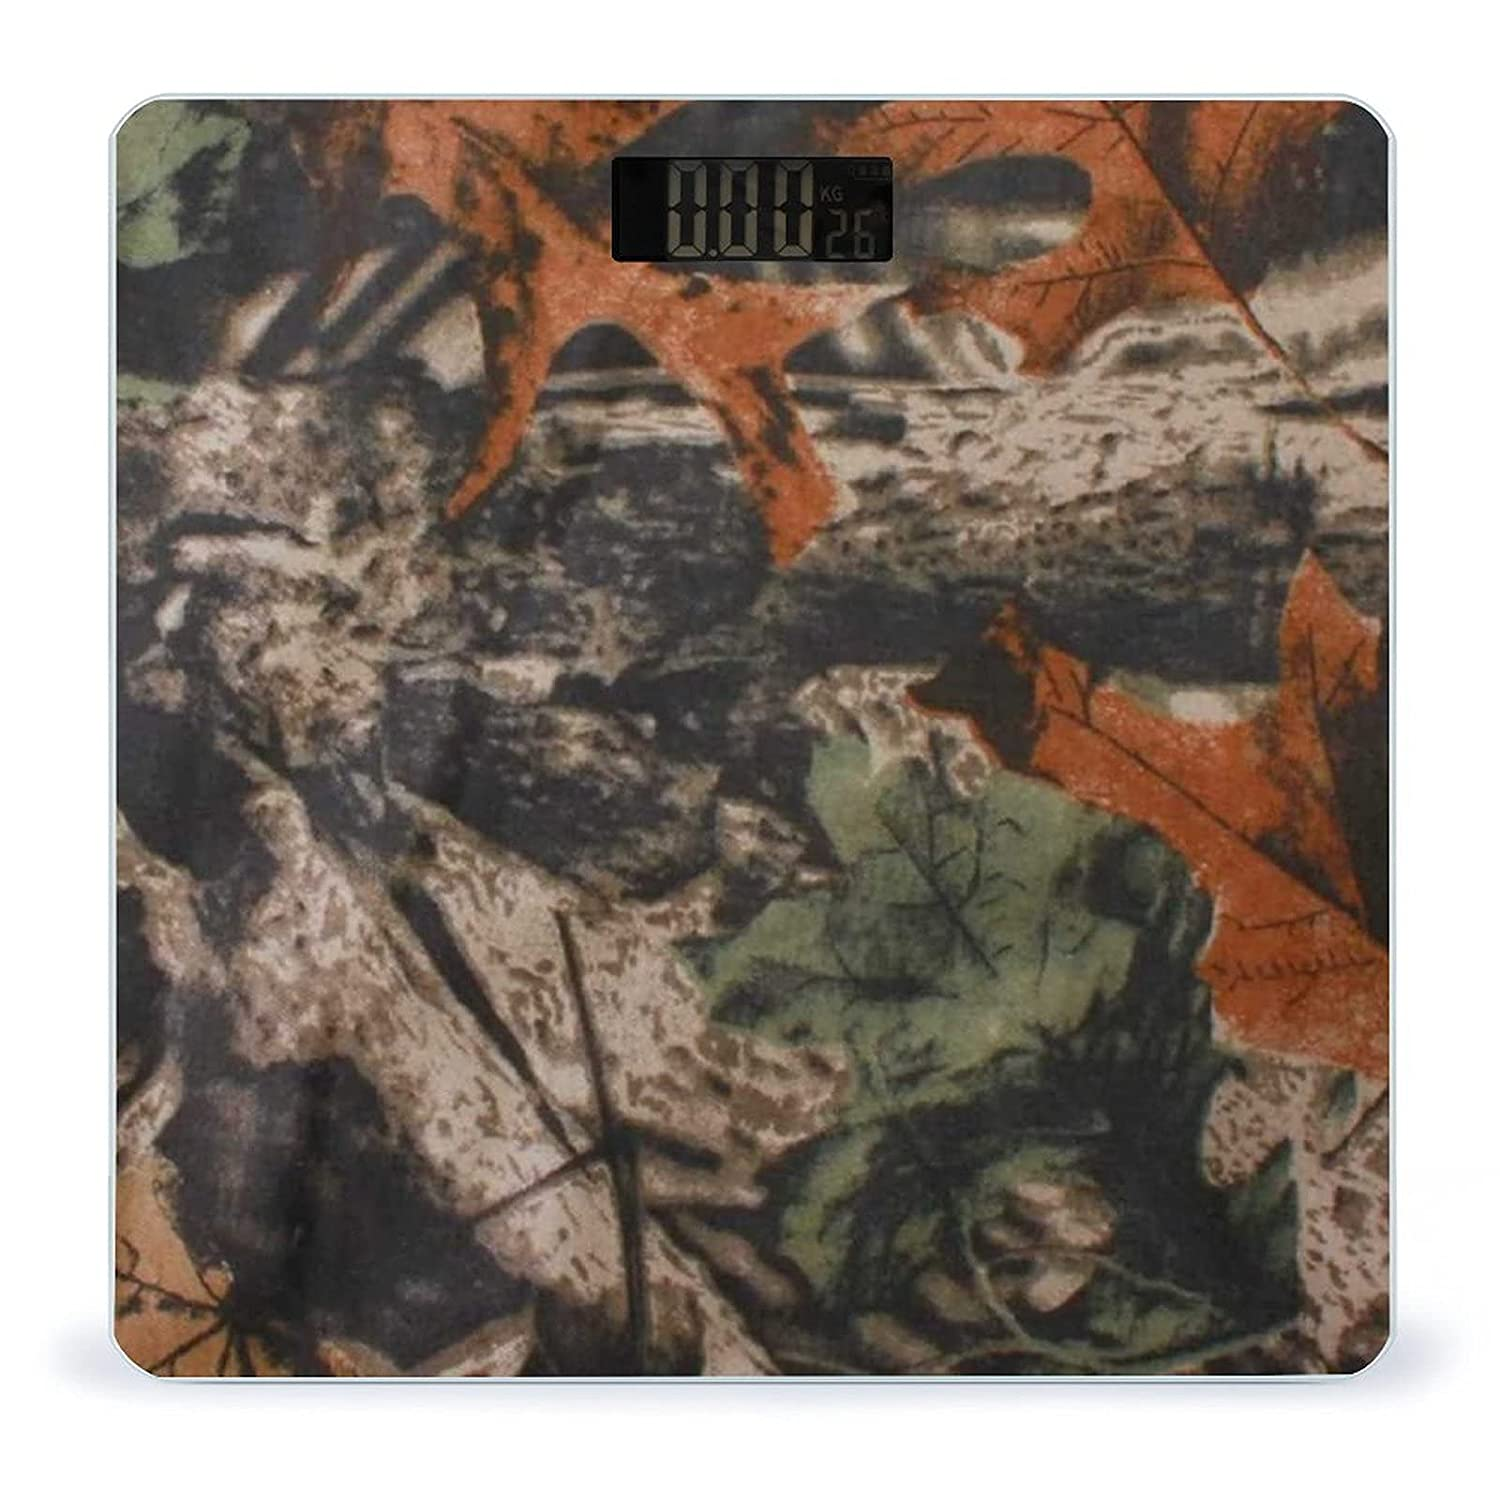 OcuteO Ranking TOP4 Weight Scale Camouflage Forest Scales for Digital New Shipping Free Shipping Vintage